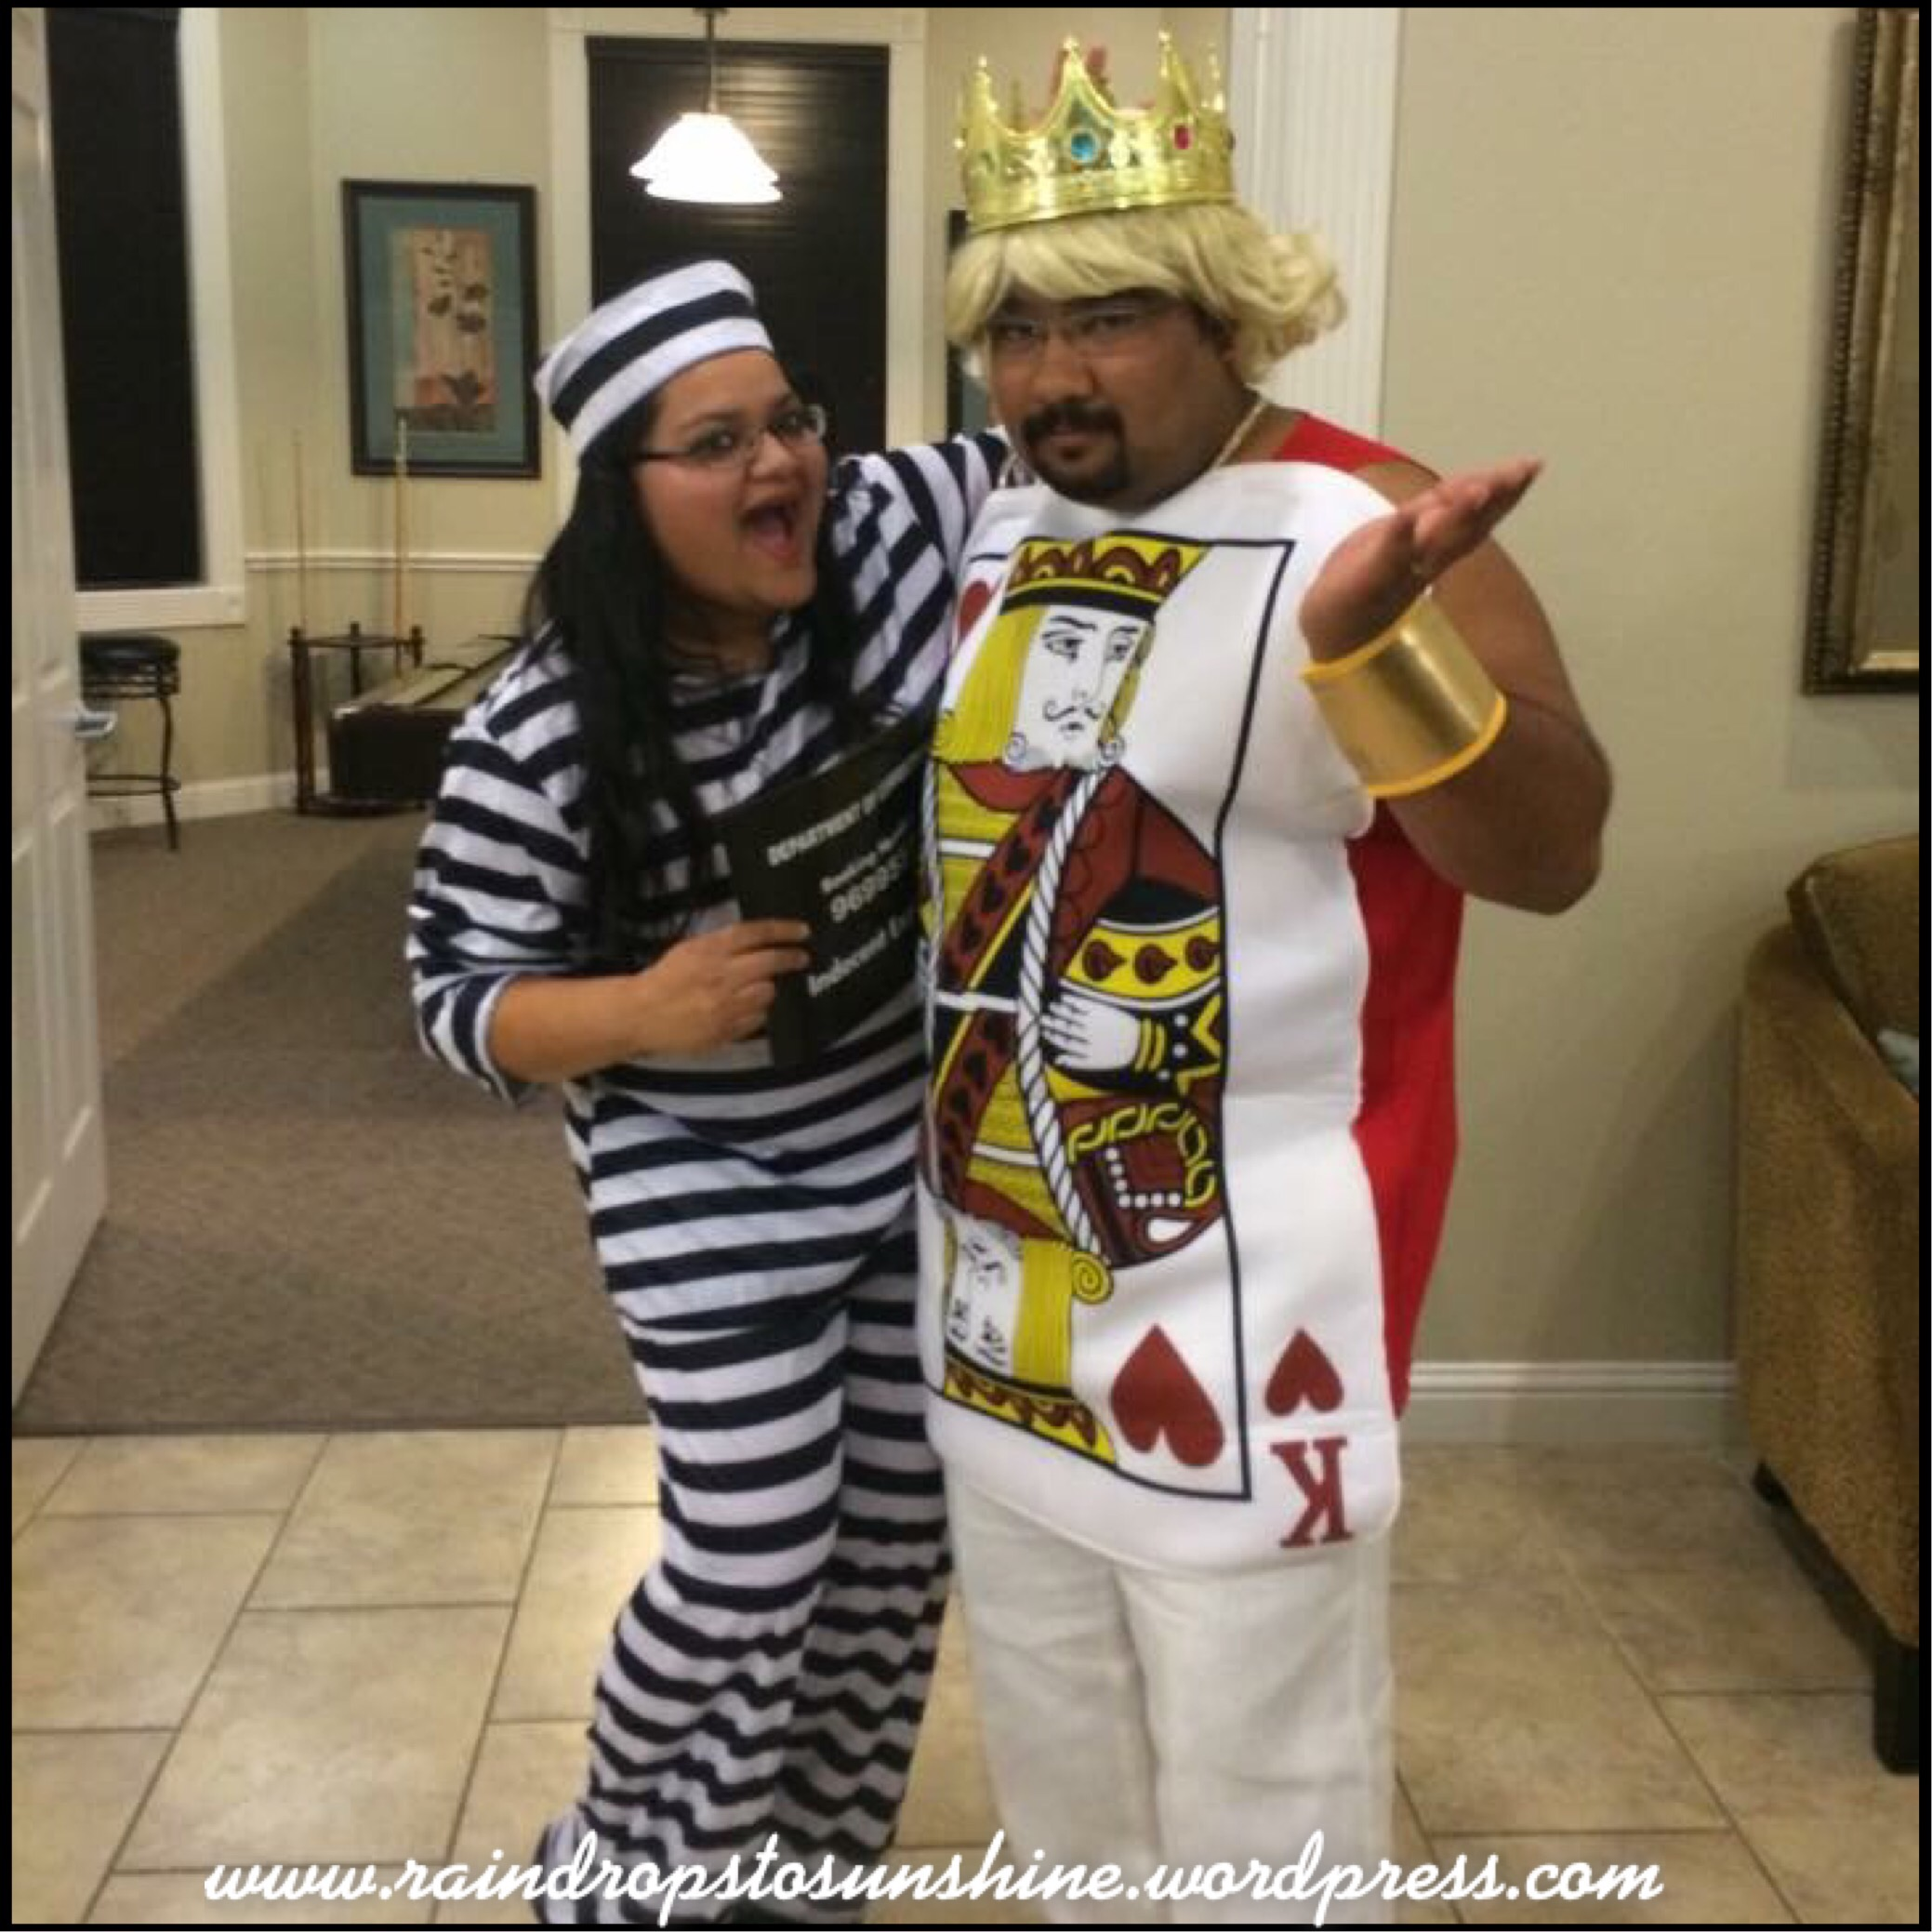 Say hello to the King of Hearts and the Prisoner!! The king of hears costume won my hubby the best costume award!! Both our costumes were from Target.  sc 1 st  raindropstosunshine & Halloween costumes over the yearsu2026 | raindropstosunshine